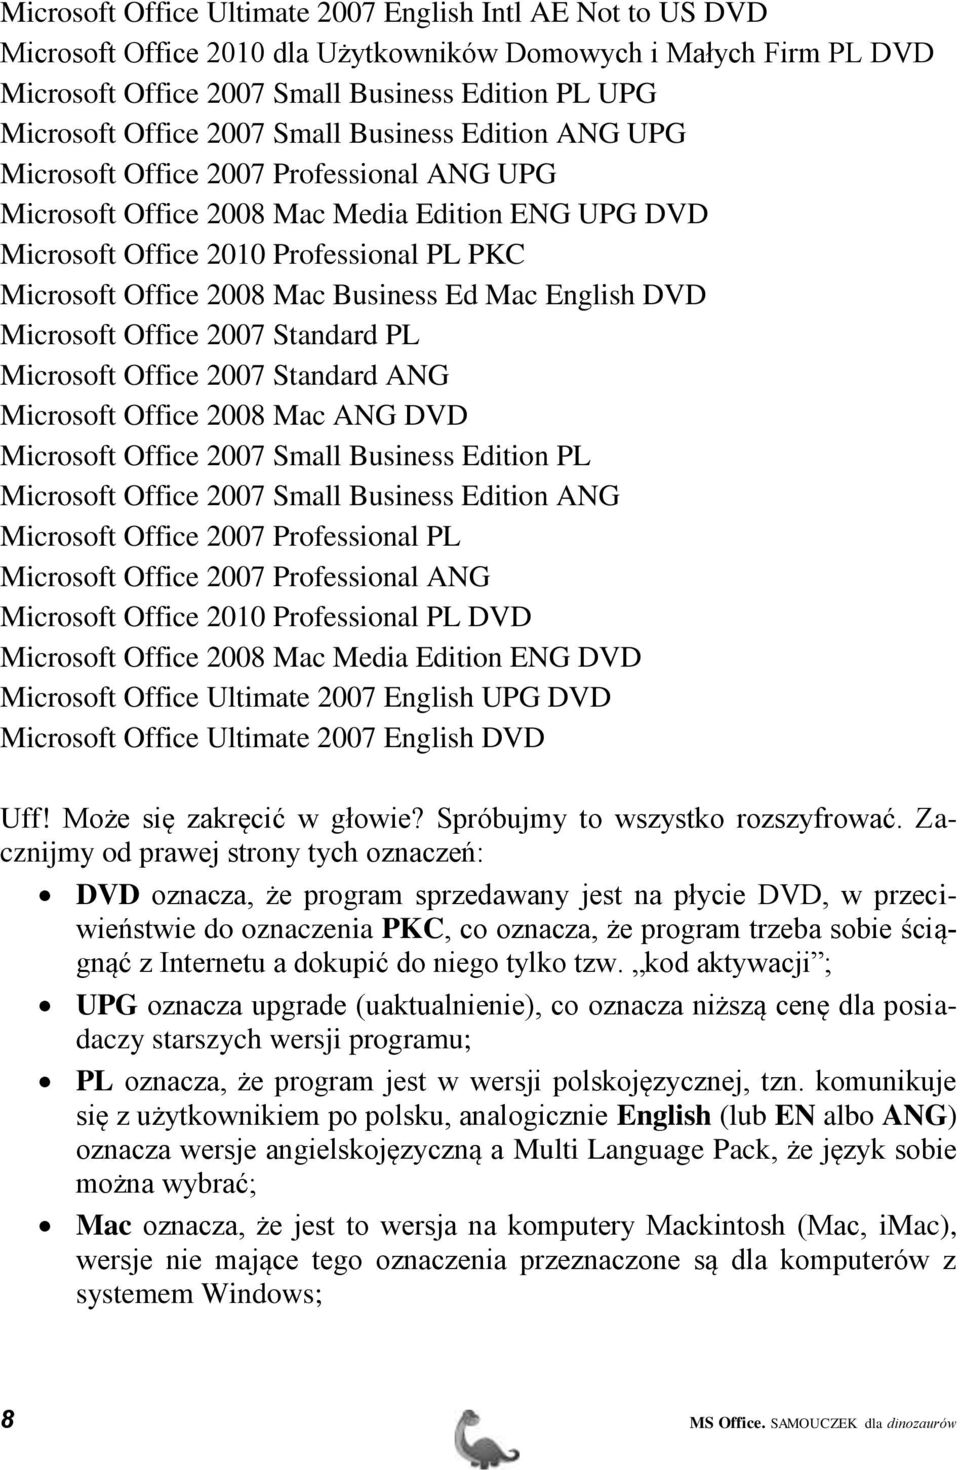 Business Ed Mac English DVD Microsoft Office 2007 Standard PL Microsoft Office 2007 Standard ANG Microsoft Office 2008 Mac ANG DVD Microsoft Office 2007 Small Business Edition PL Microsoft Office